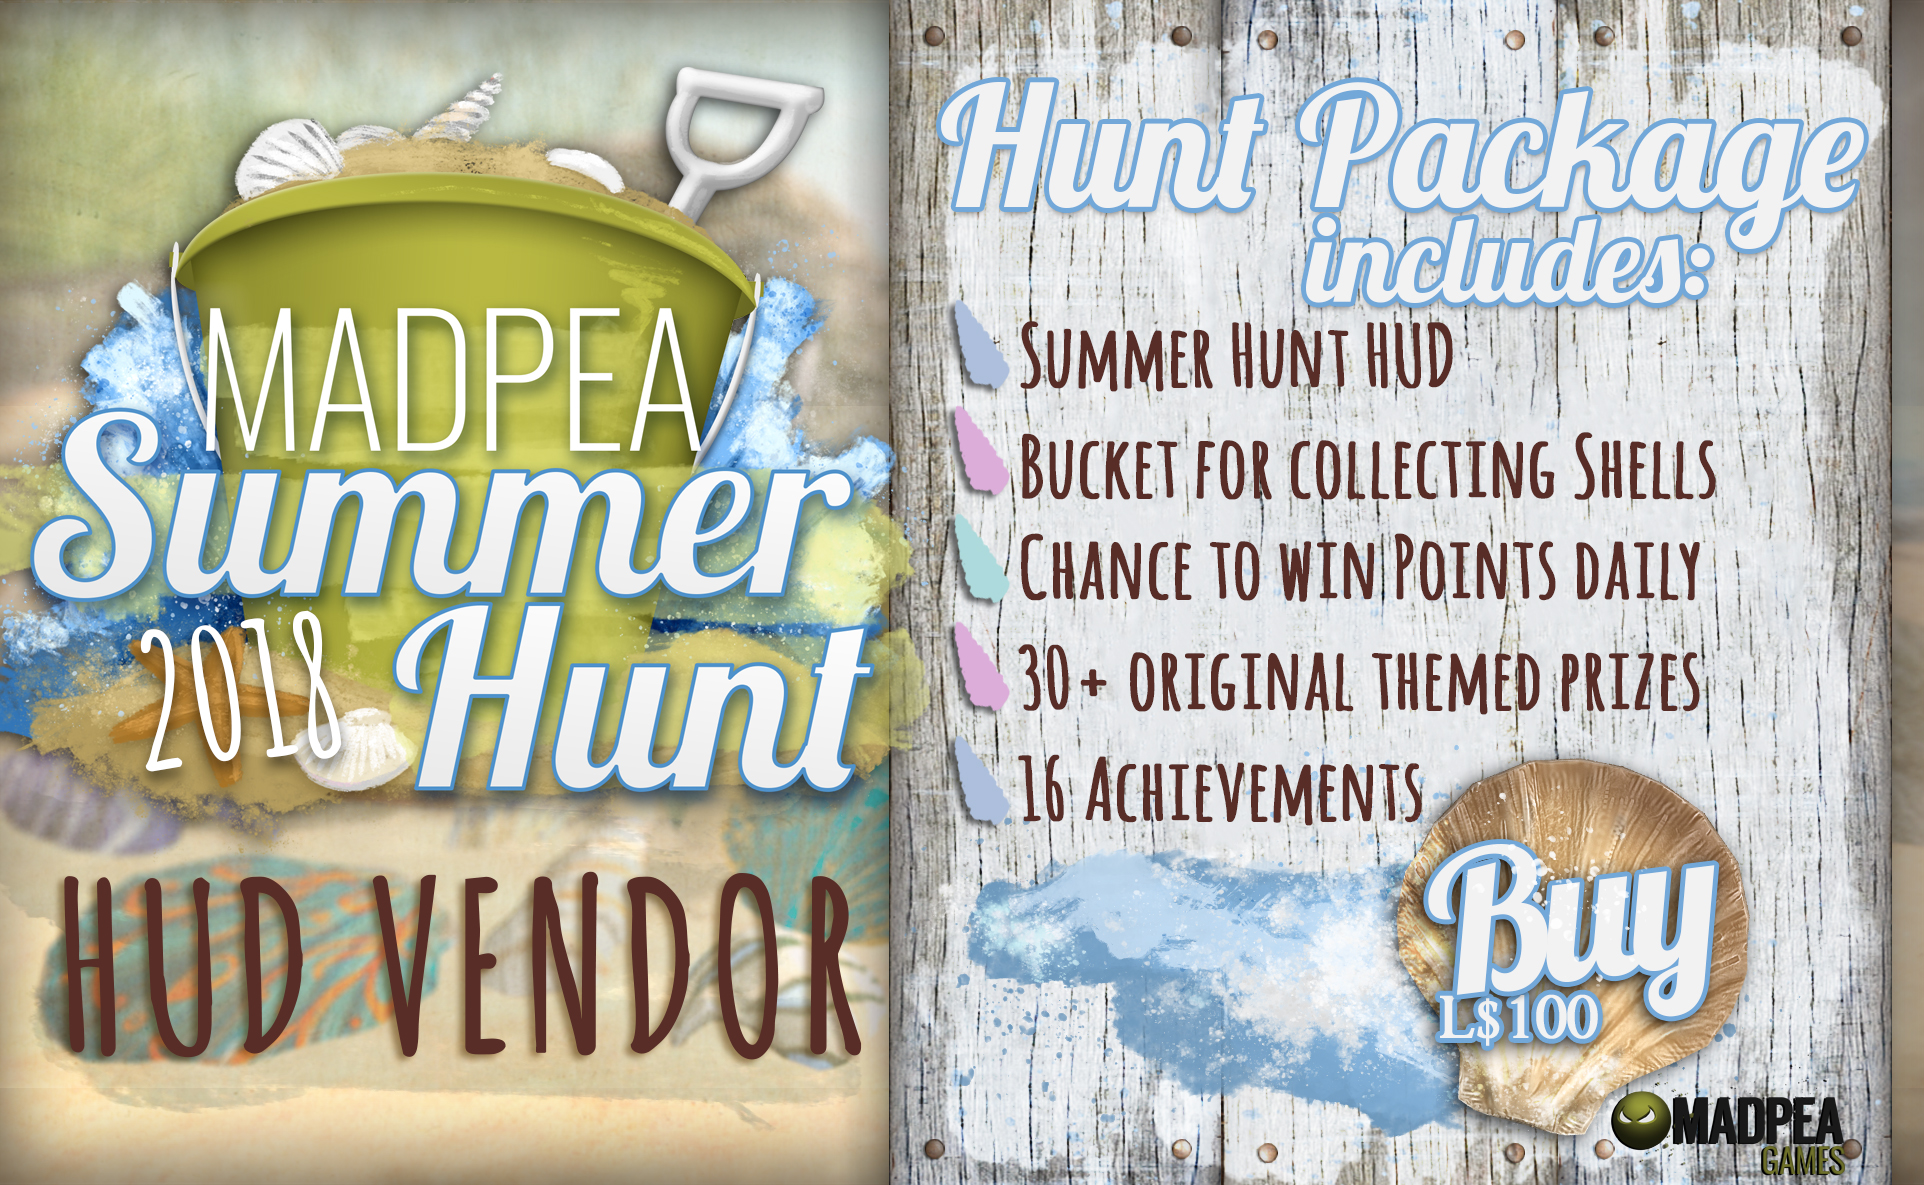 The MadPea Summer Hunt Guide for Hunters